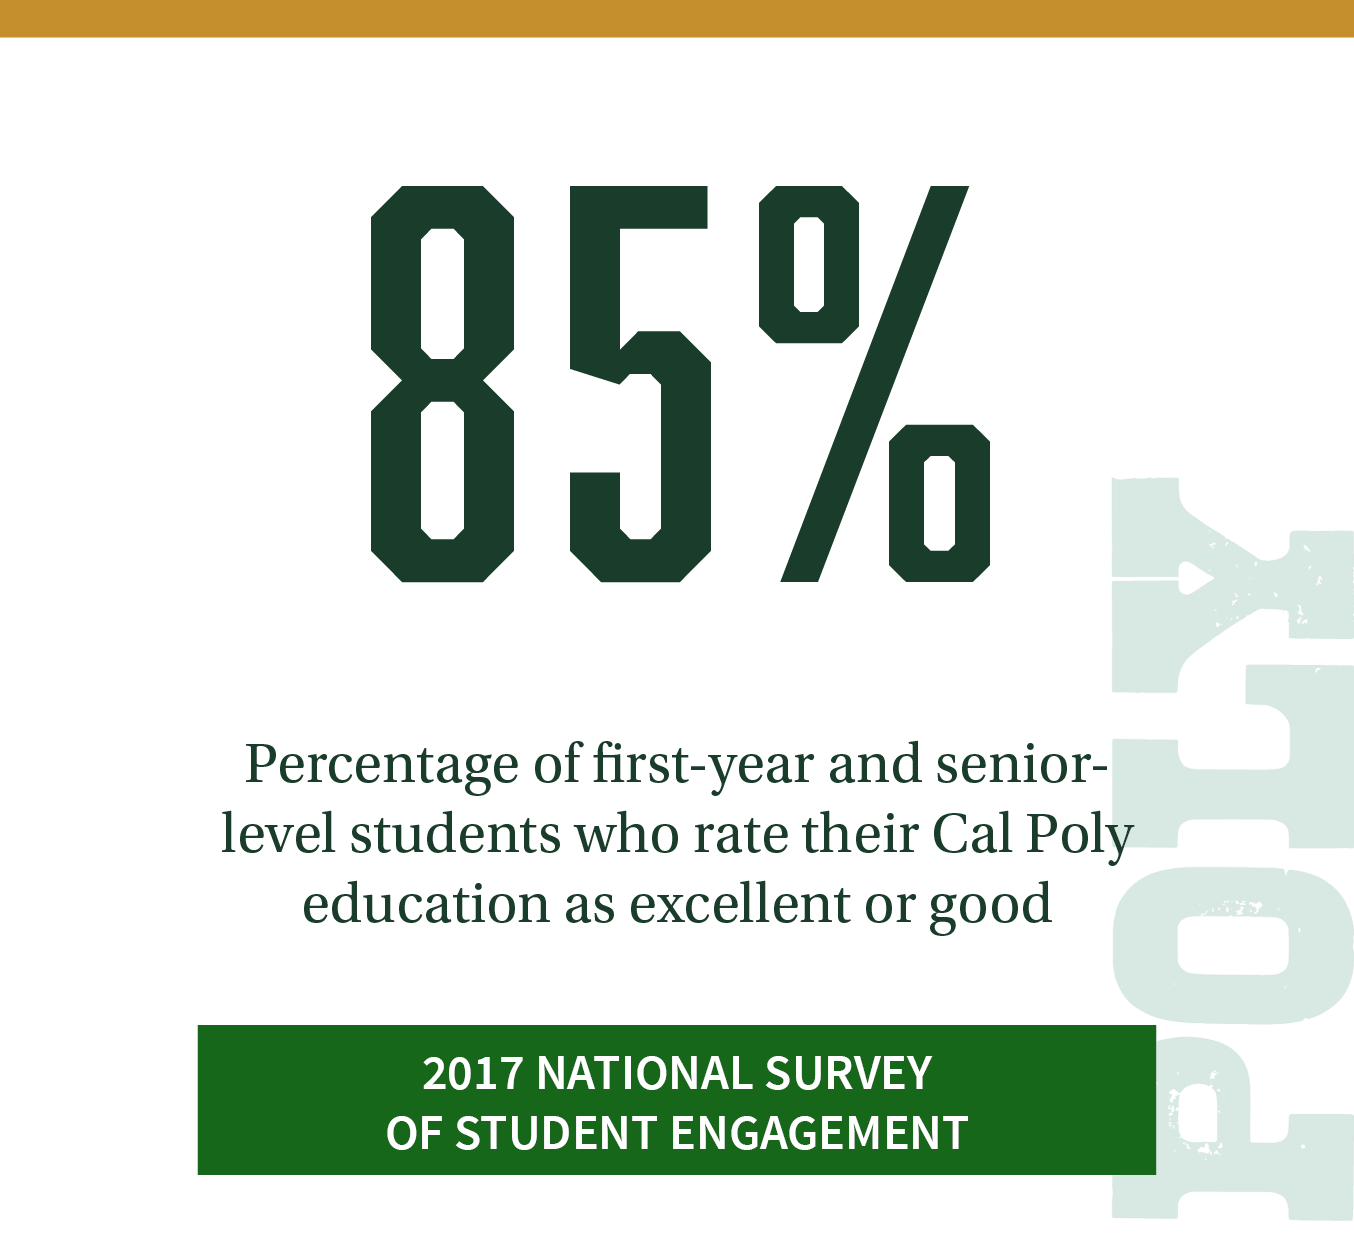 85%. Percentage of first-year and senior-level students who rate their Cal Poly education as excellent or good. Click to review more Cal Poly responses in the 2017 National Survey of Student Engagement.